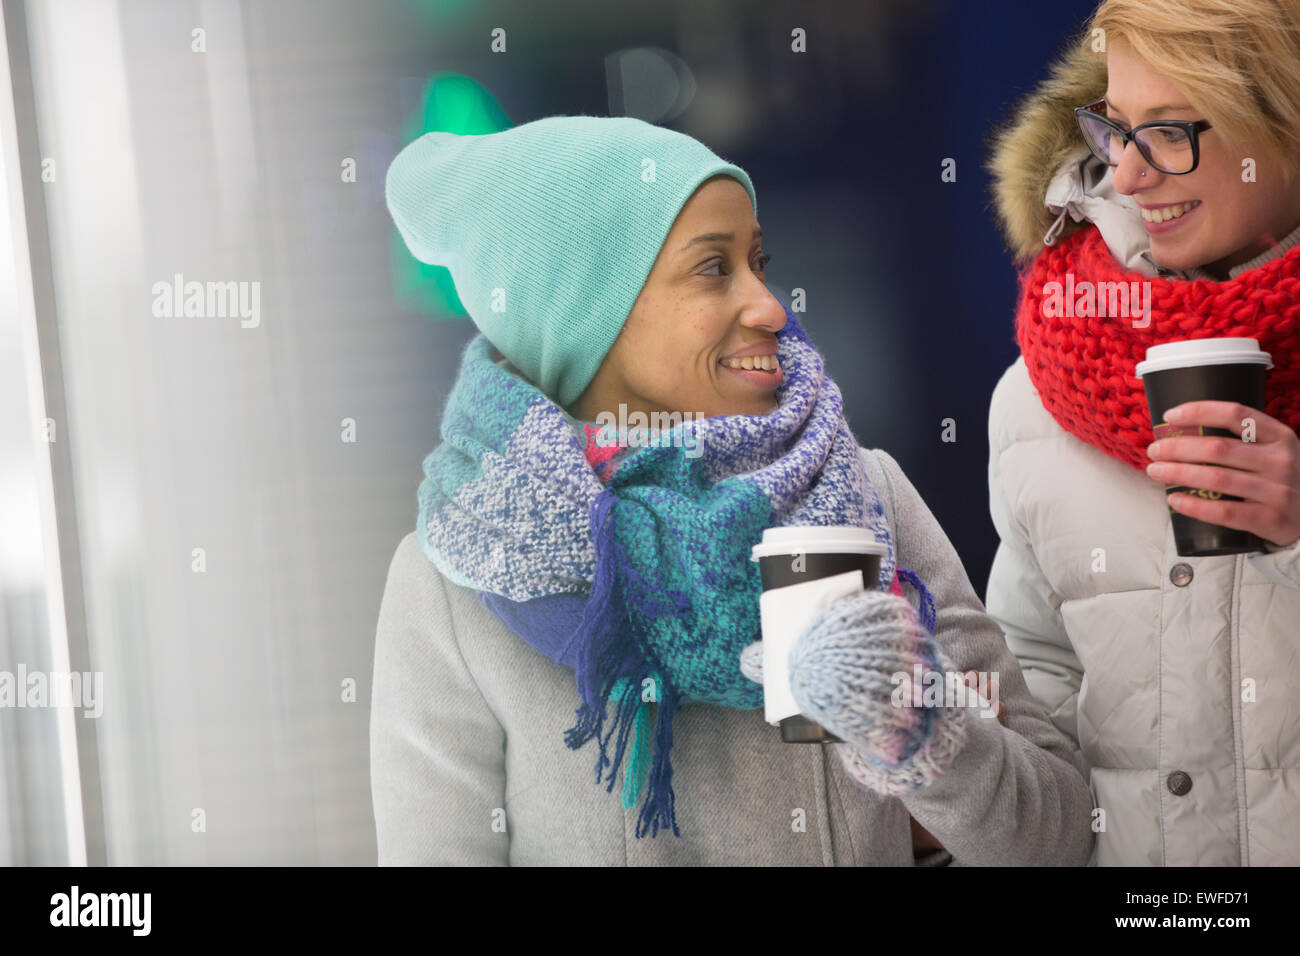 Happy women looking at each other while holding disposable cups - Stock Image